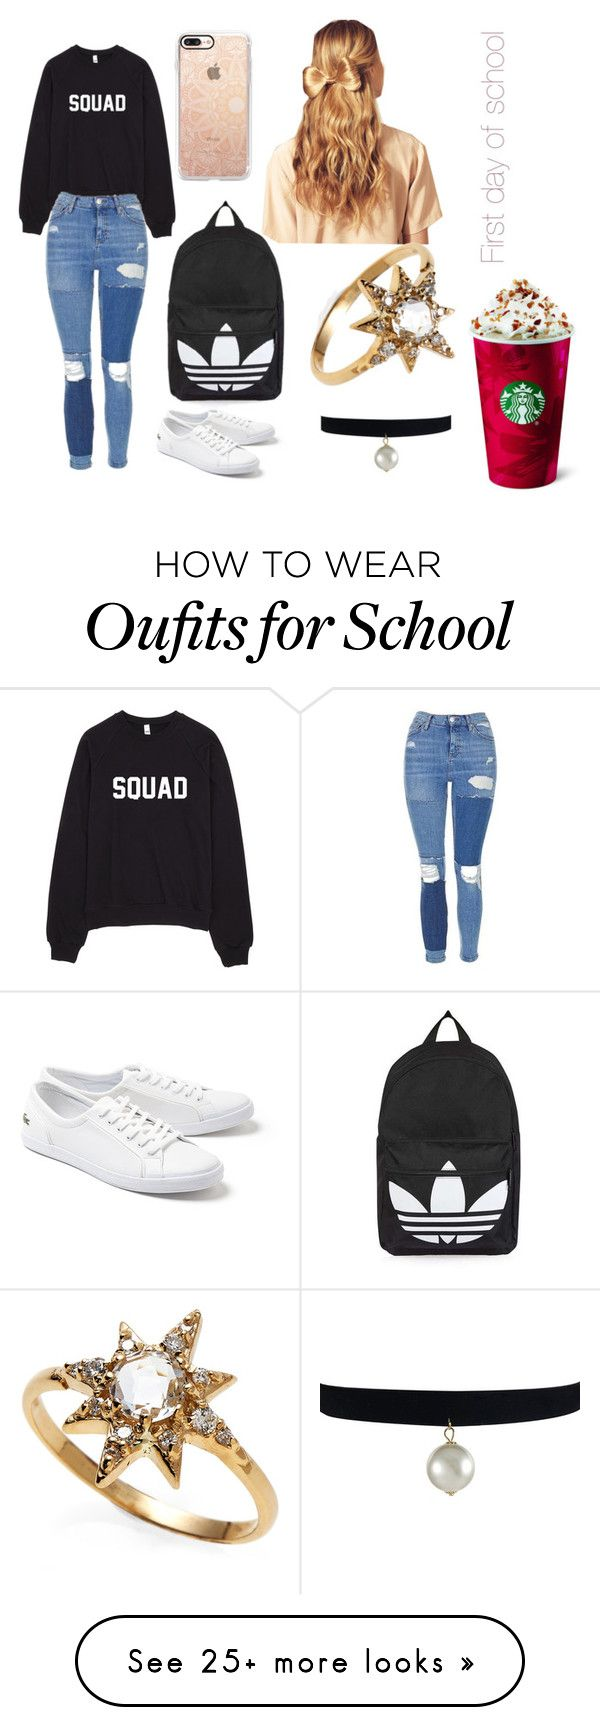 """First day of school"" by wills-emily on Polyvore featuring Topshop, Lacoste, Casetify, Hershesons and Anzie"